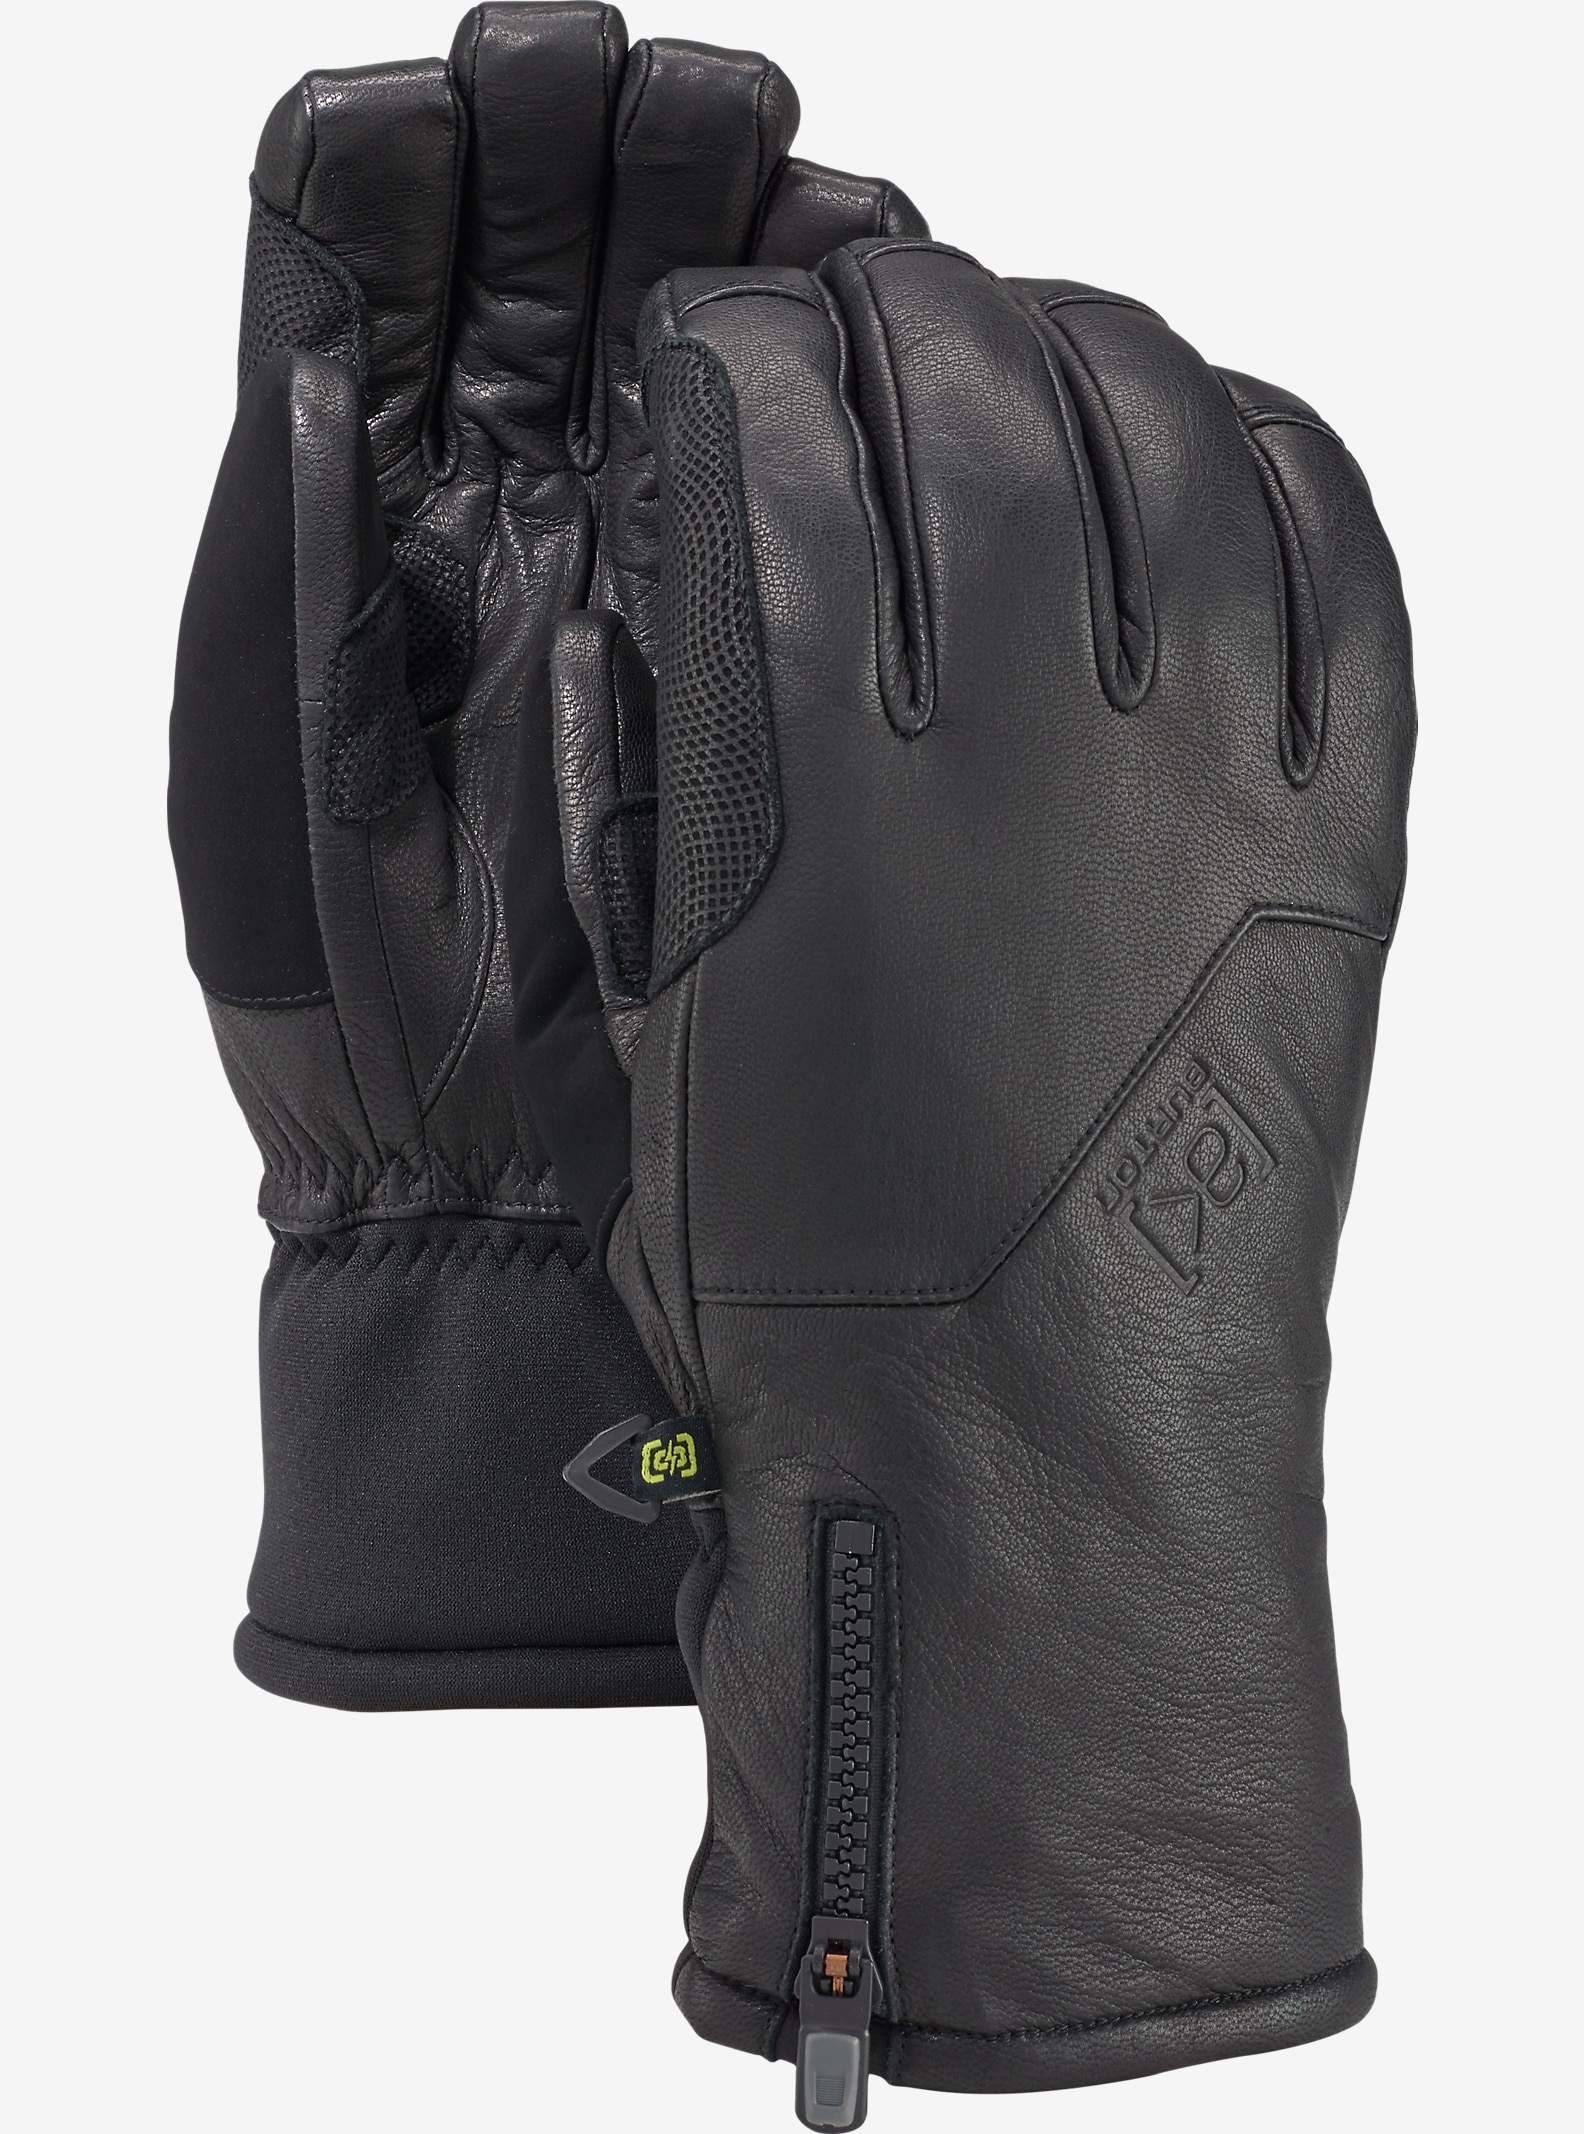 Burton [ak] Guide Glove shown in True Black